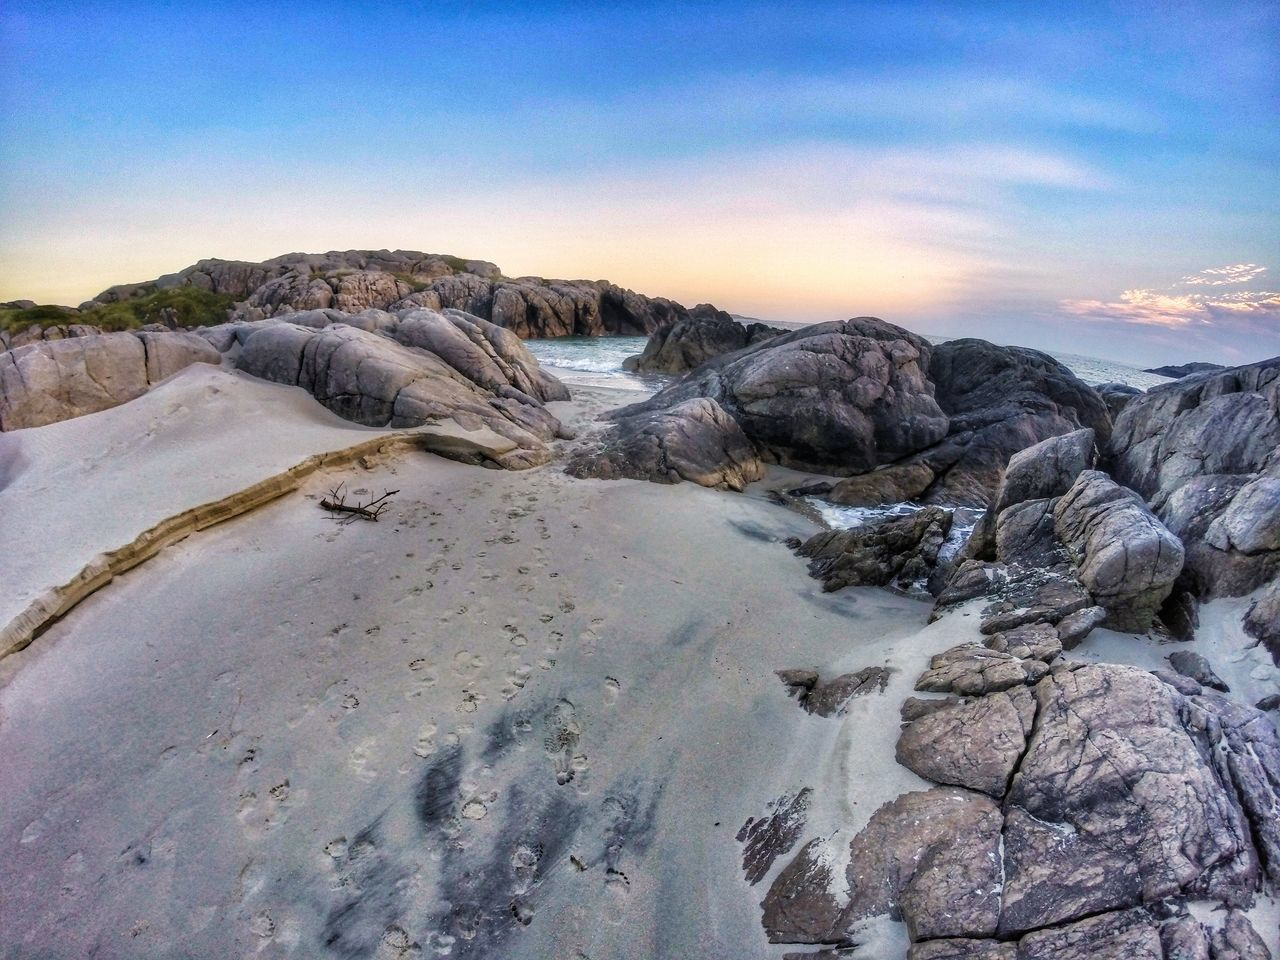 Norway Norge Norgefoto Vestlandet Rogaland Nature Beauty In Nature Outdoors Sand Rocks Rocks And Water Beachlovers Norwaynature NorwayTourism Goprophotography Eyemphotography Worldplaces Aroundtheworld Travel Destinations Travel Photography Follow4follow Landscape Scenics Traveladdict